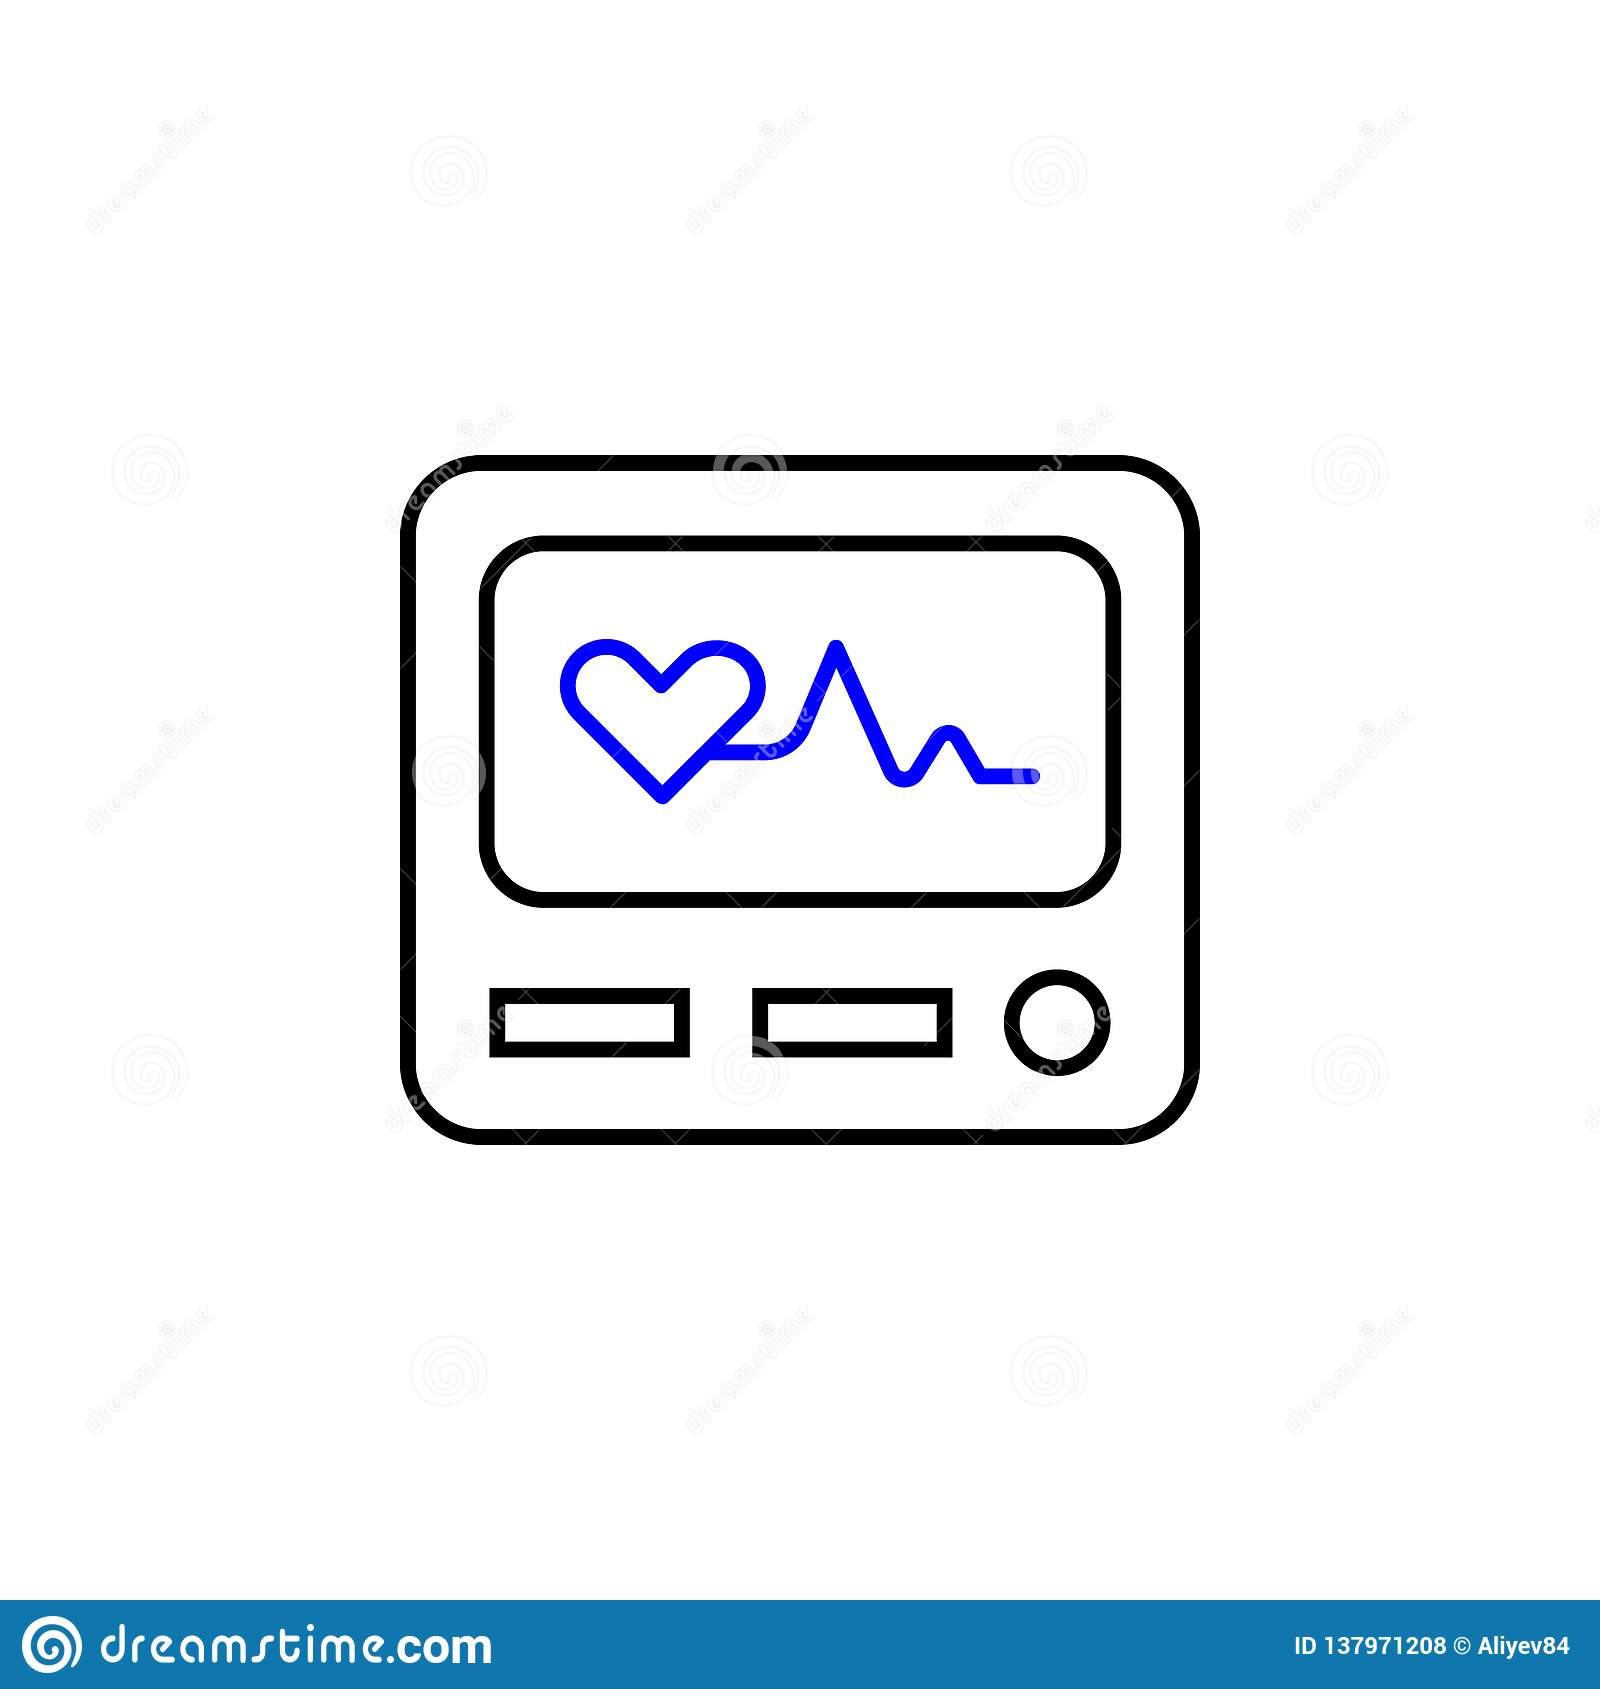 Medical electrocardiography icon. Element of Medical icon for mobile concept and web apps. Detailed Medical electrocardiography